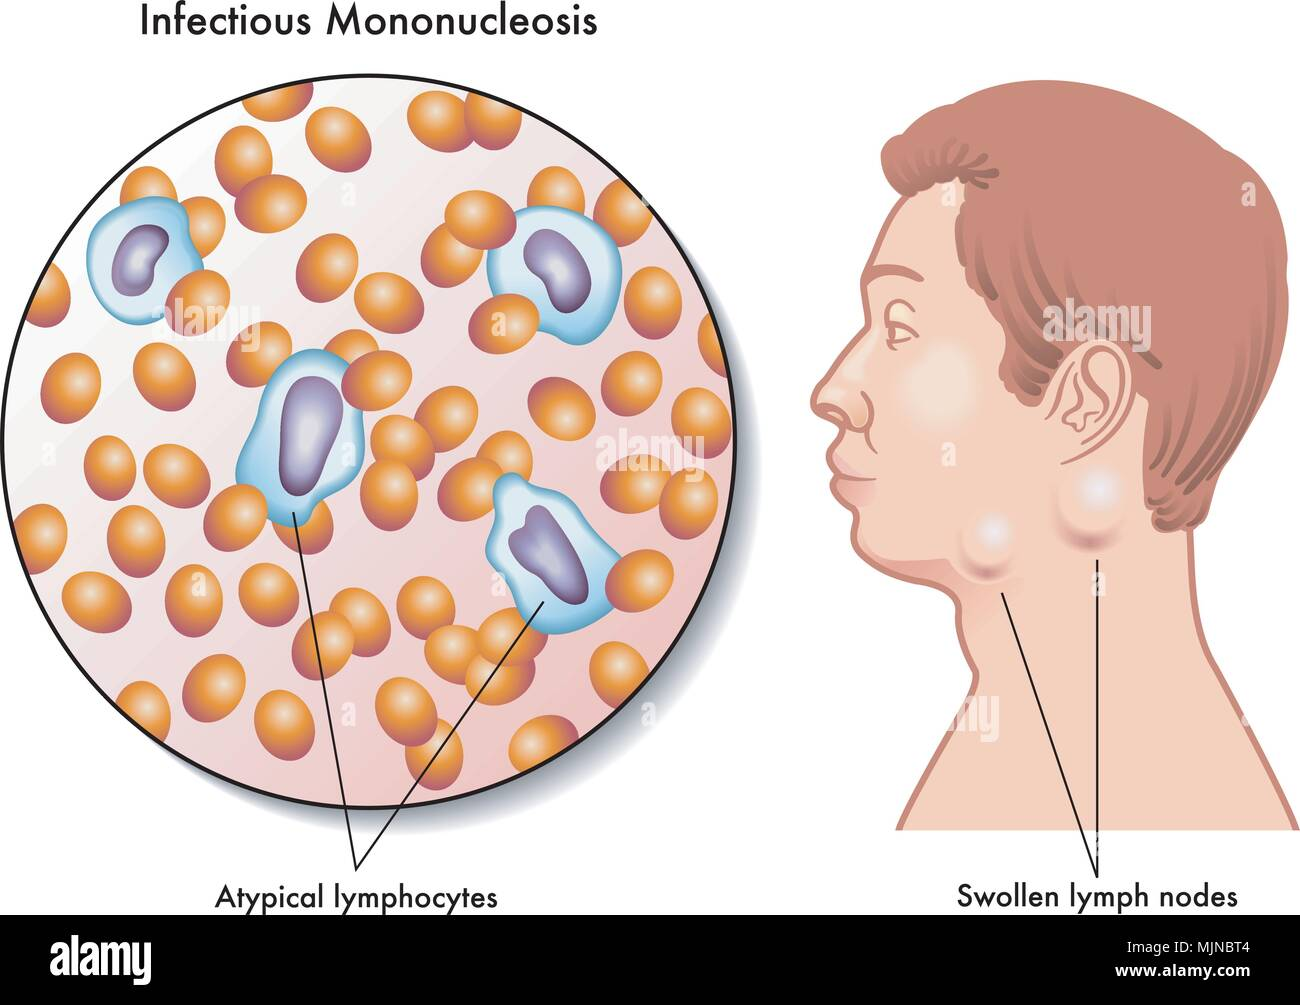 vector medical illustration of the symptoms of infectious mononucleosis - Stock Image